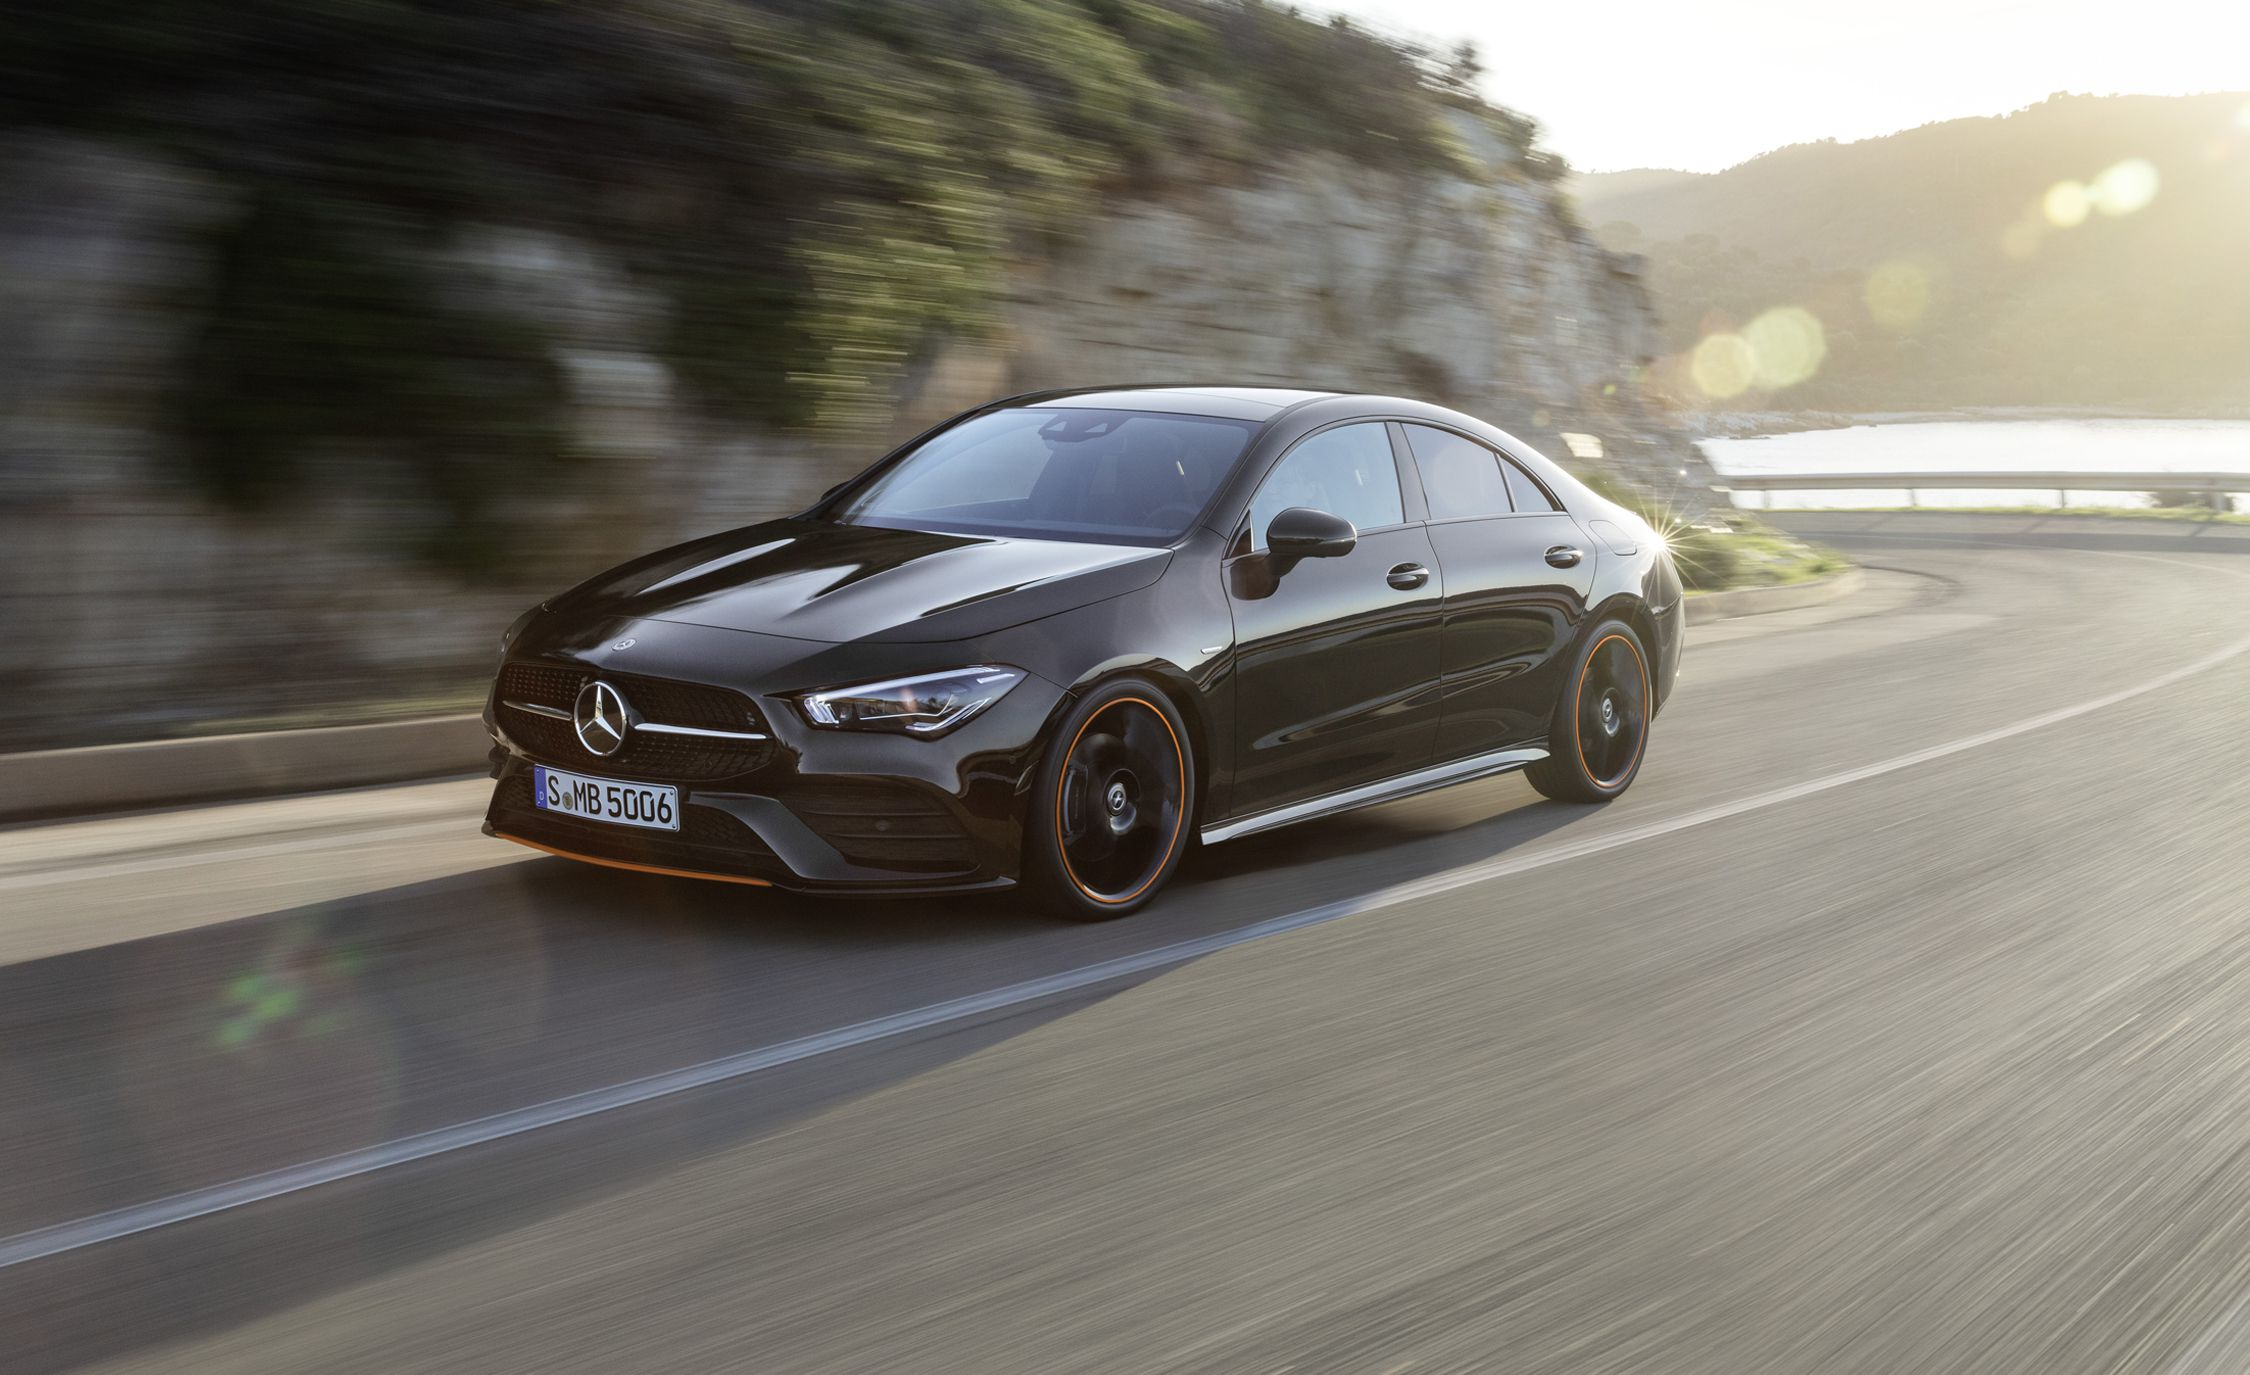 Complete car info for 39 A 2020 Mercedes CLA 250 Wallpaper with 2250x1375